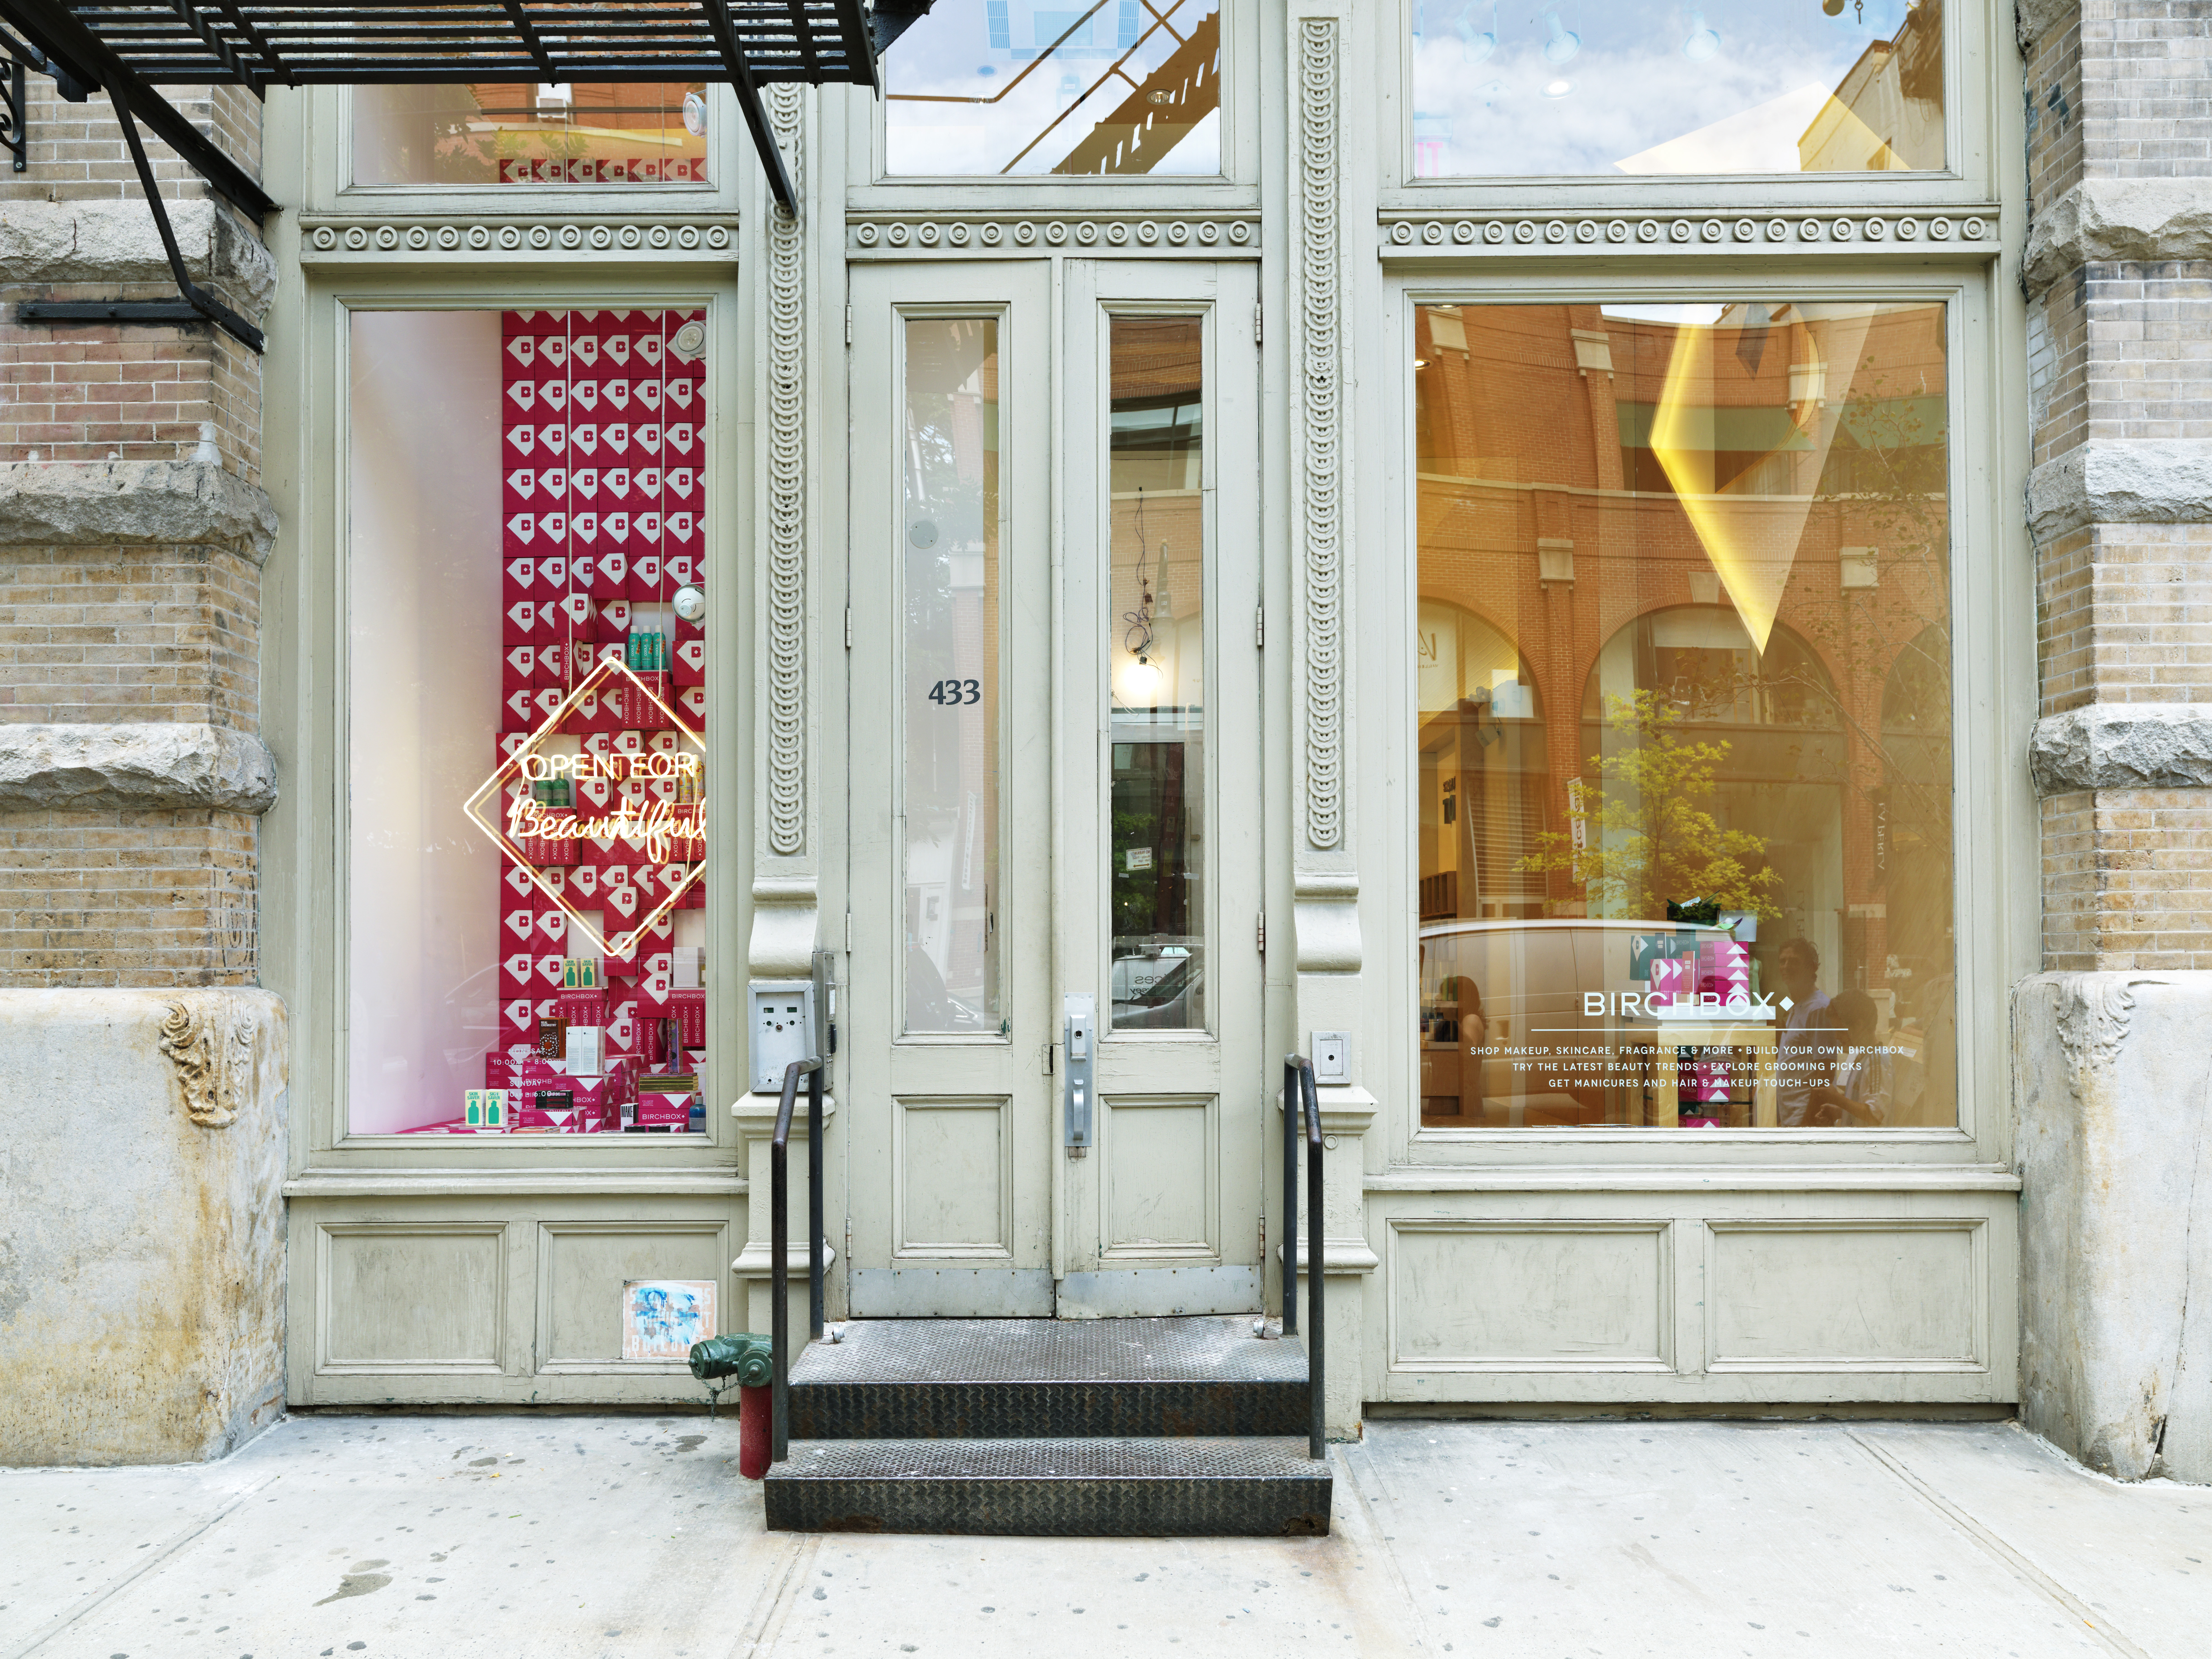 The first brick-and-mortar Birchbox store in the Soho neighborhood of New York City.